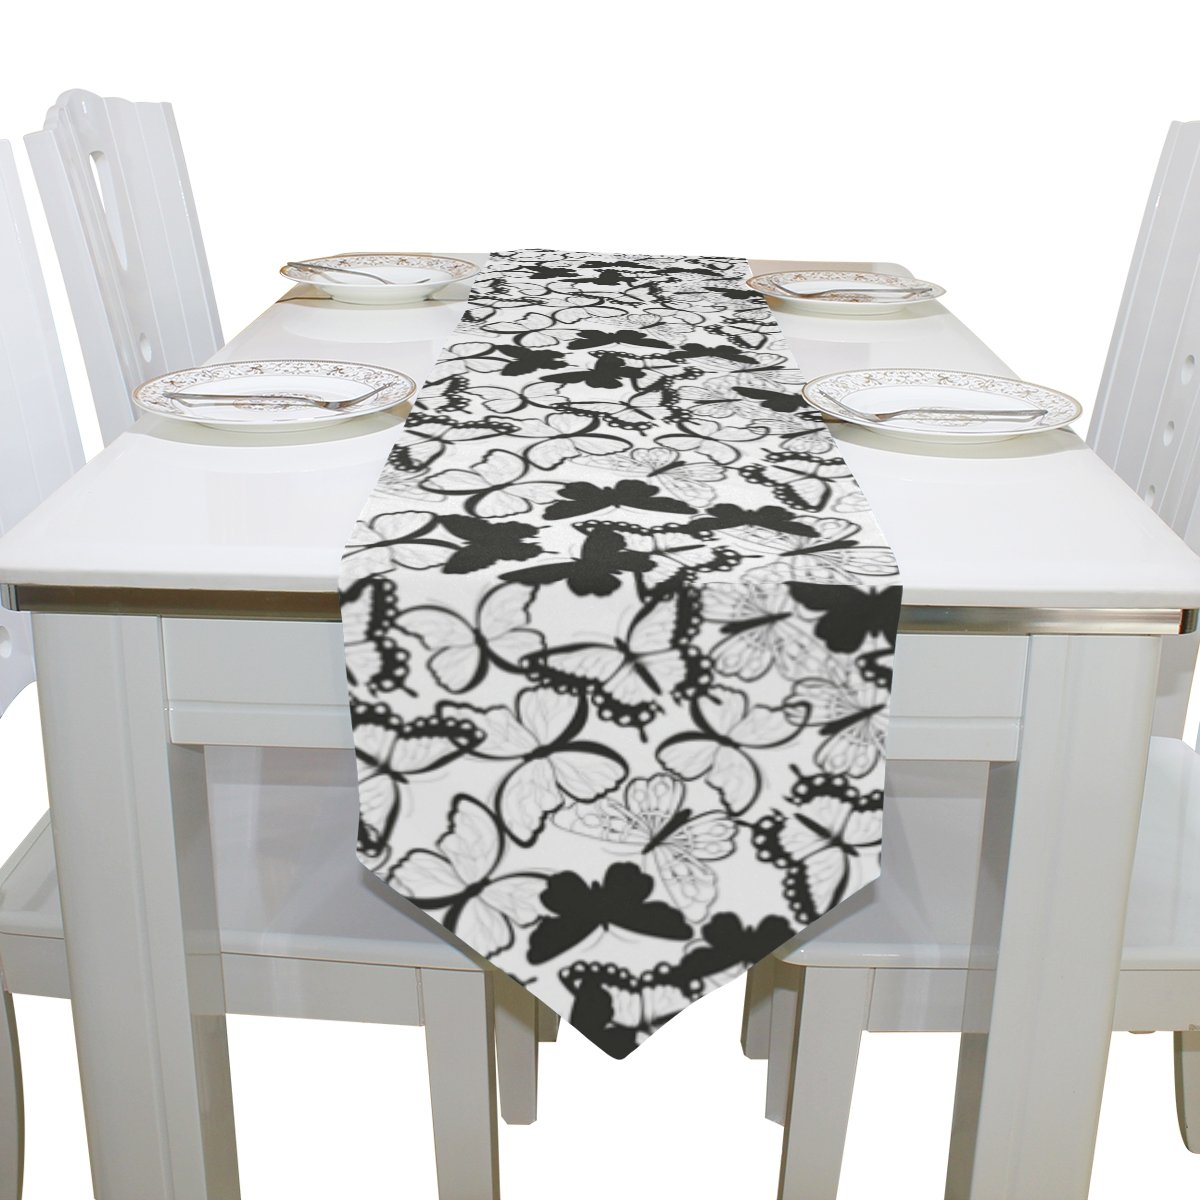 Blue Viper Butterflies Black And White Table Runner Home Décor for Weddings, Dinners, Parties, or Summer BBQ Double-Sided Printing 13x70 Inches